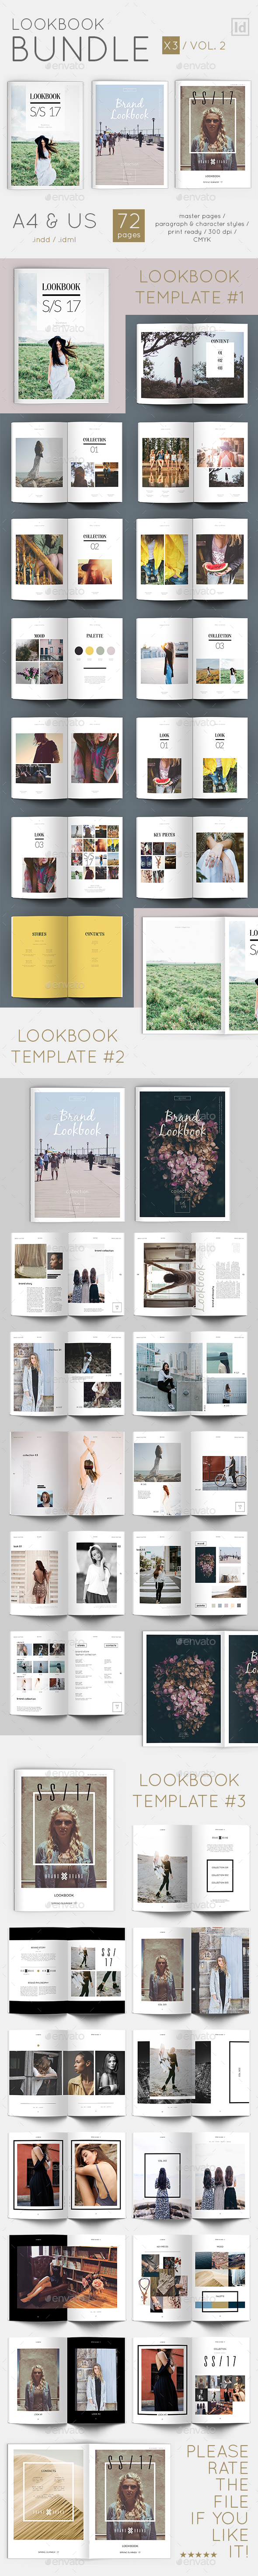 Lookbook Template Bundle 02 - Magazines Print Templates